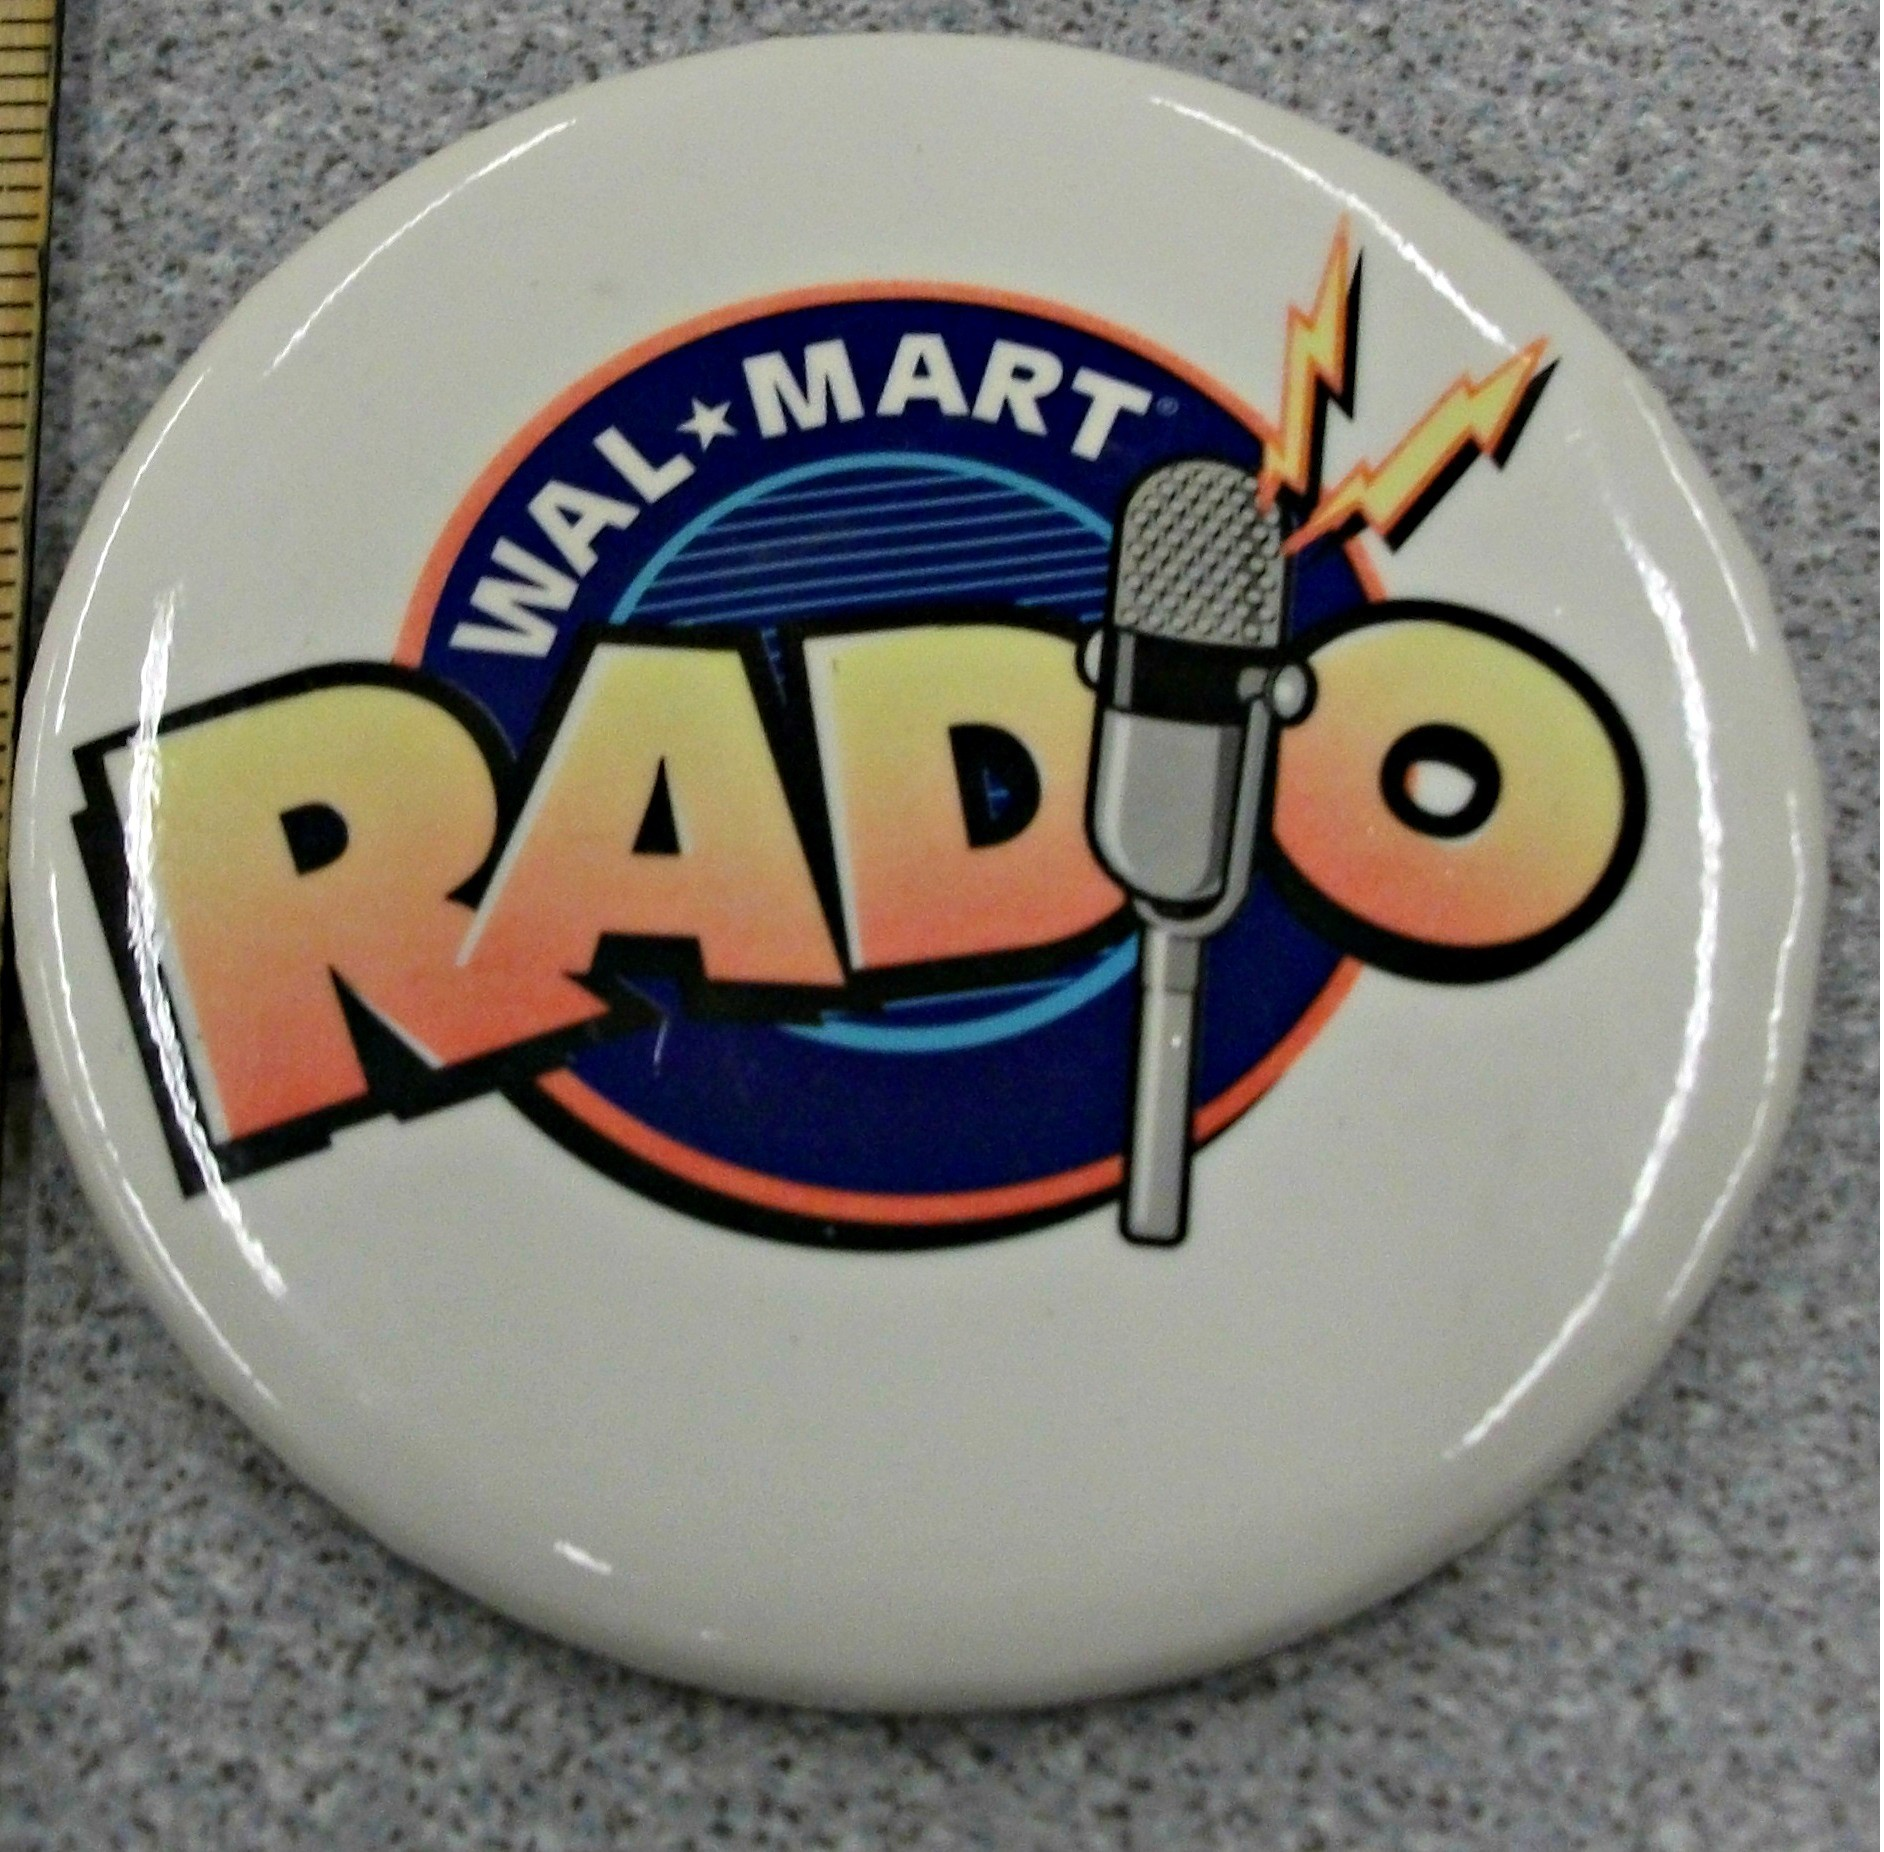 A white button features the original Walmart Radio logo